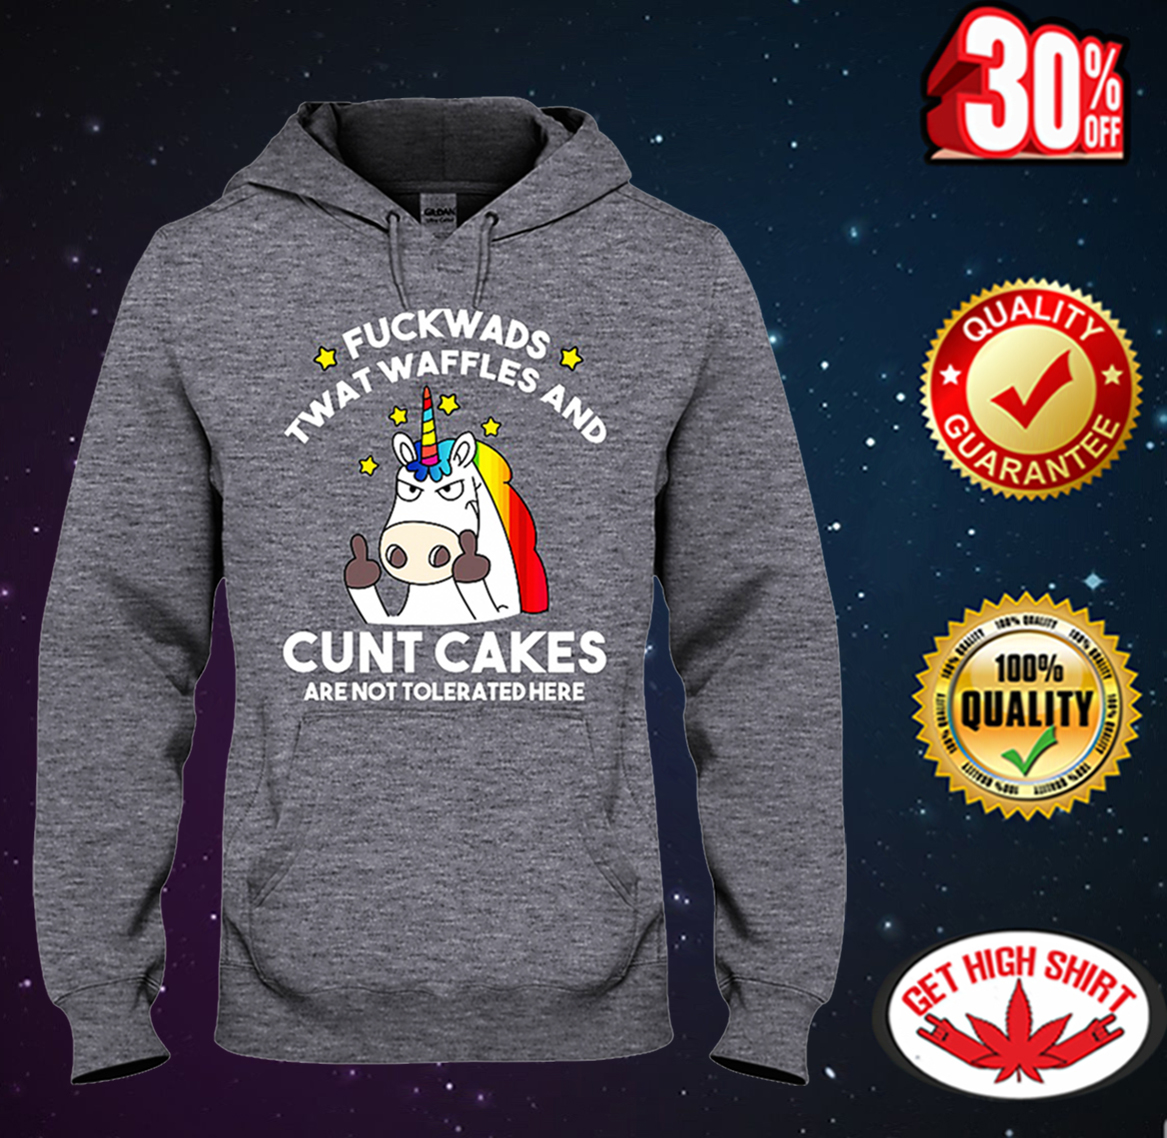 Unicorn Fuckwads twat waffles and cunt cakes are not tolerated here hooded sweatshirt